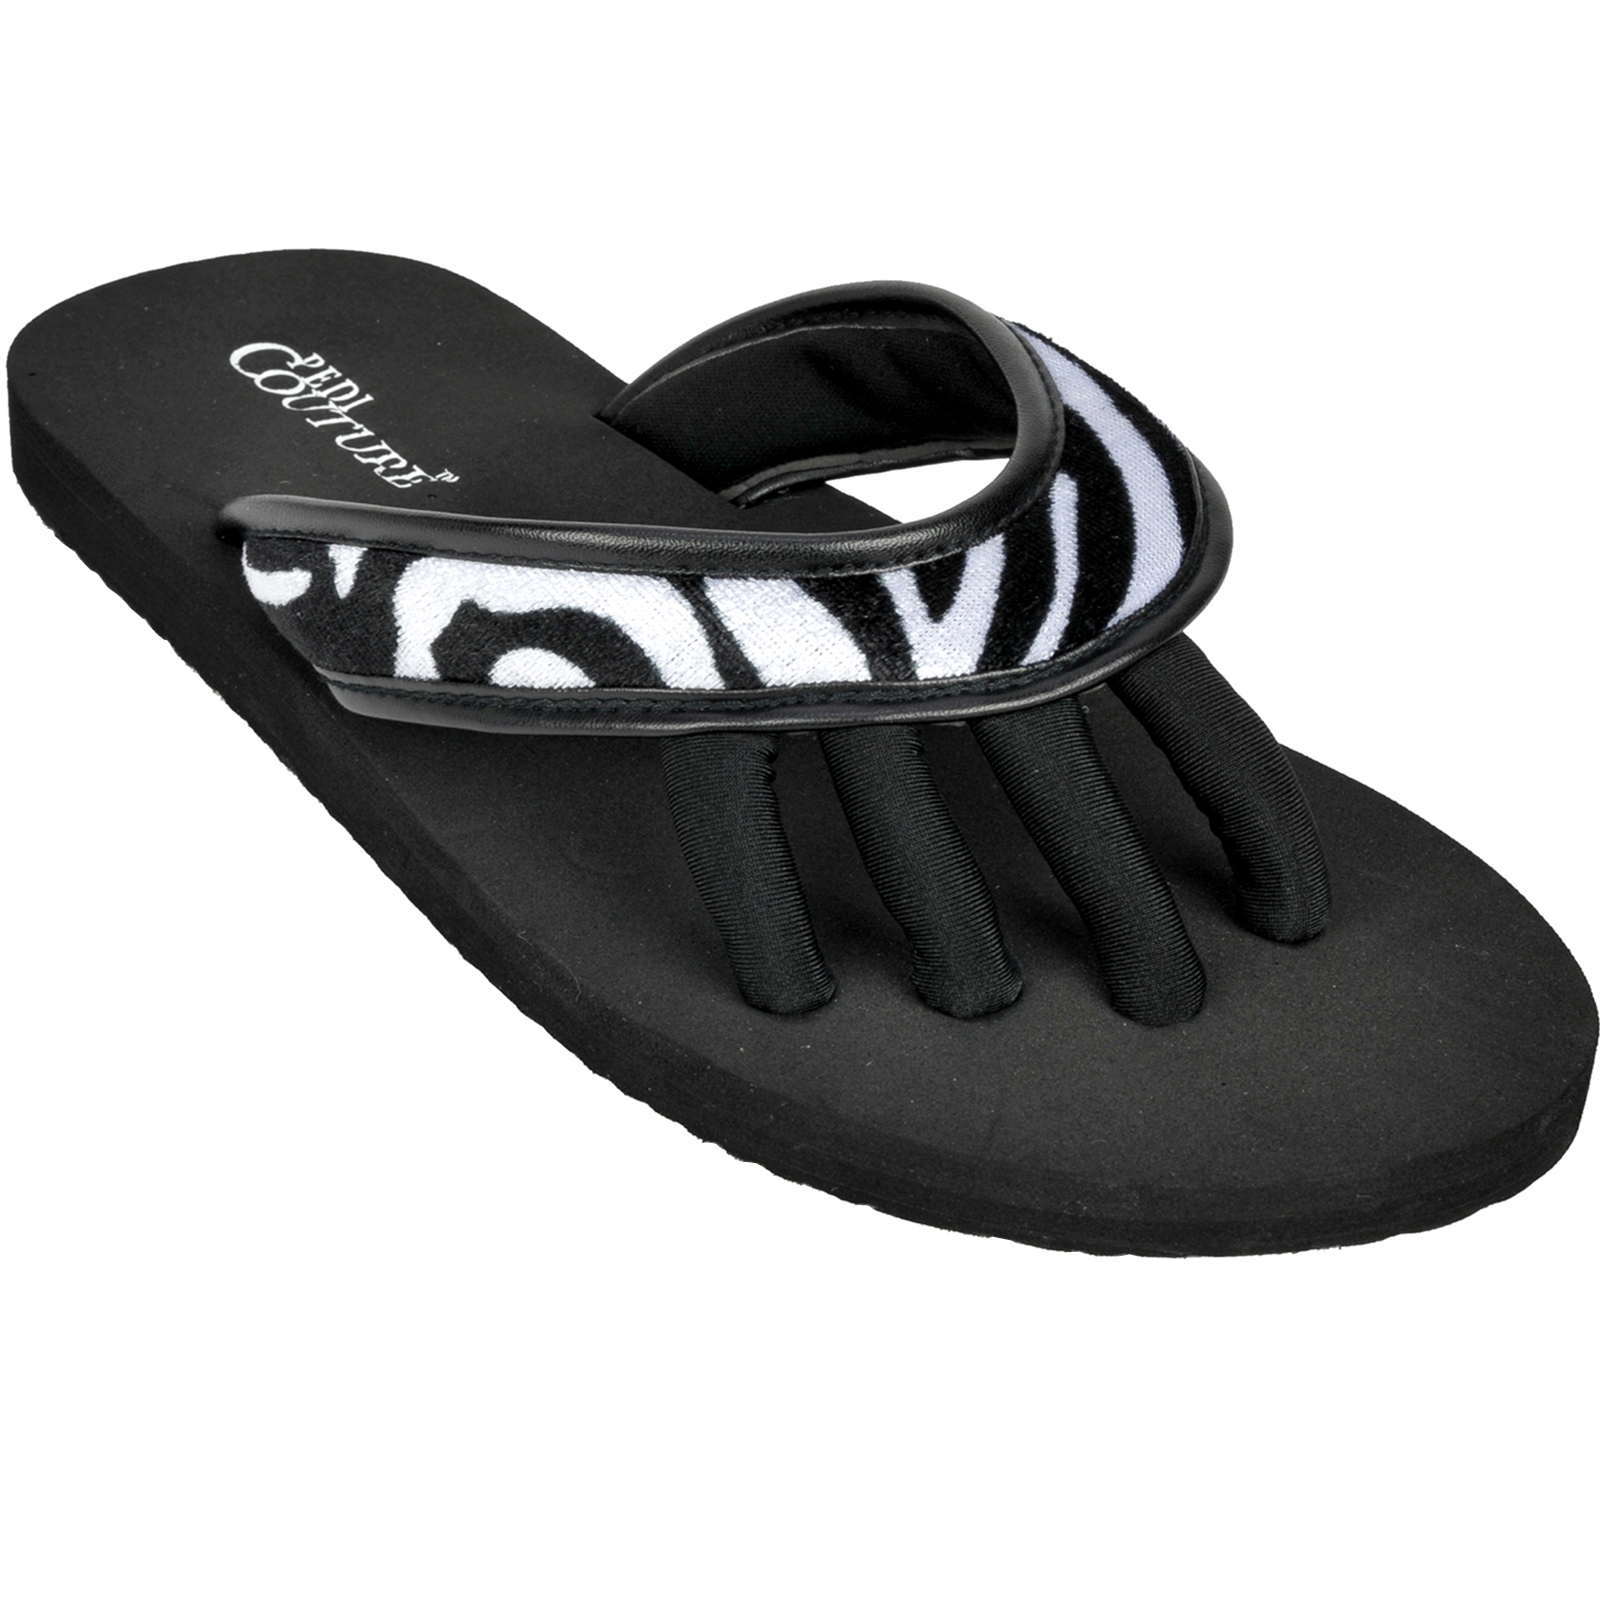 Pedi Couture - PEDI COUTURE NEW Women's Wild Pedicure Spa Toe